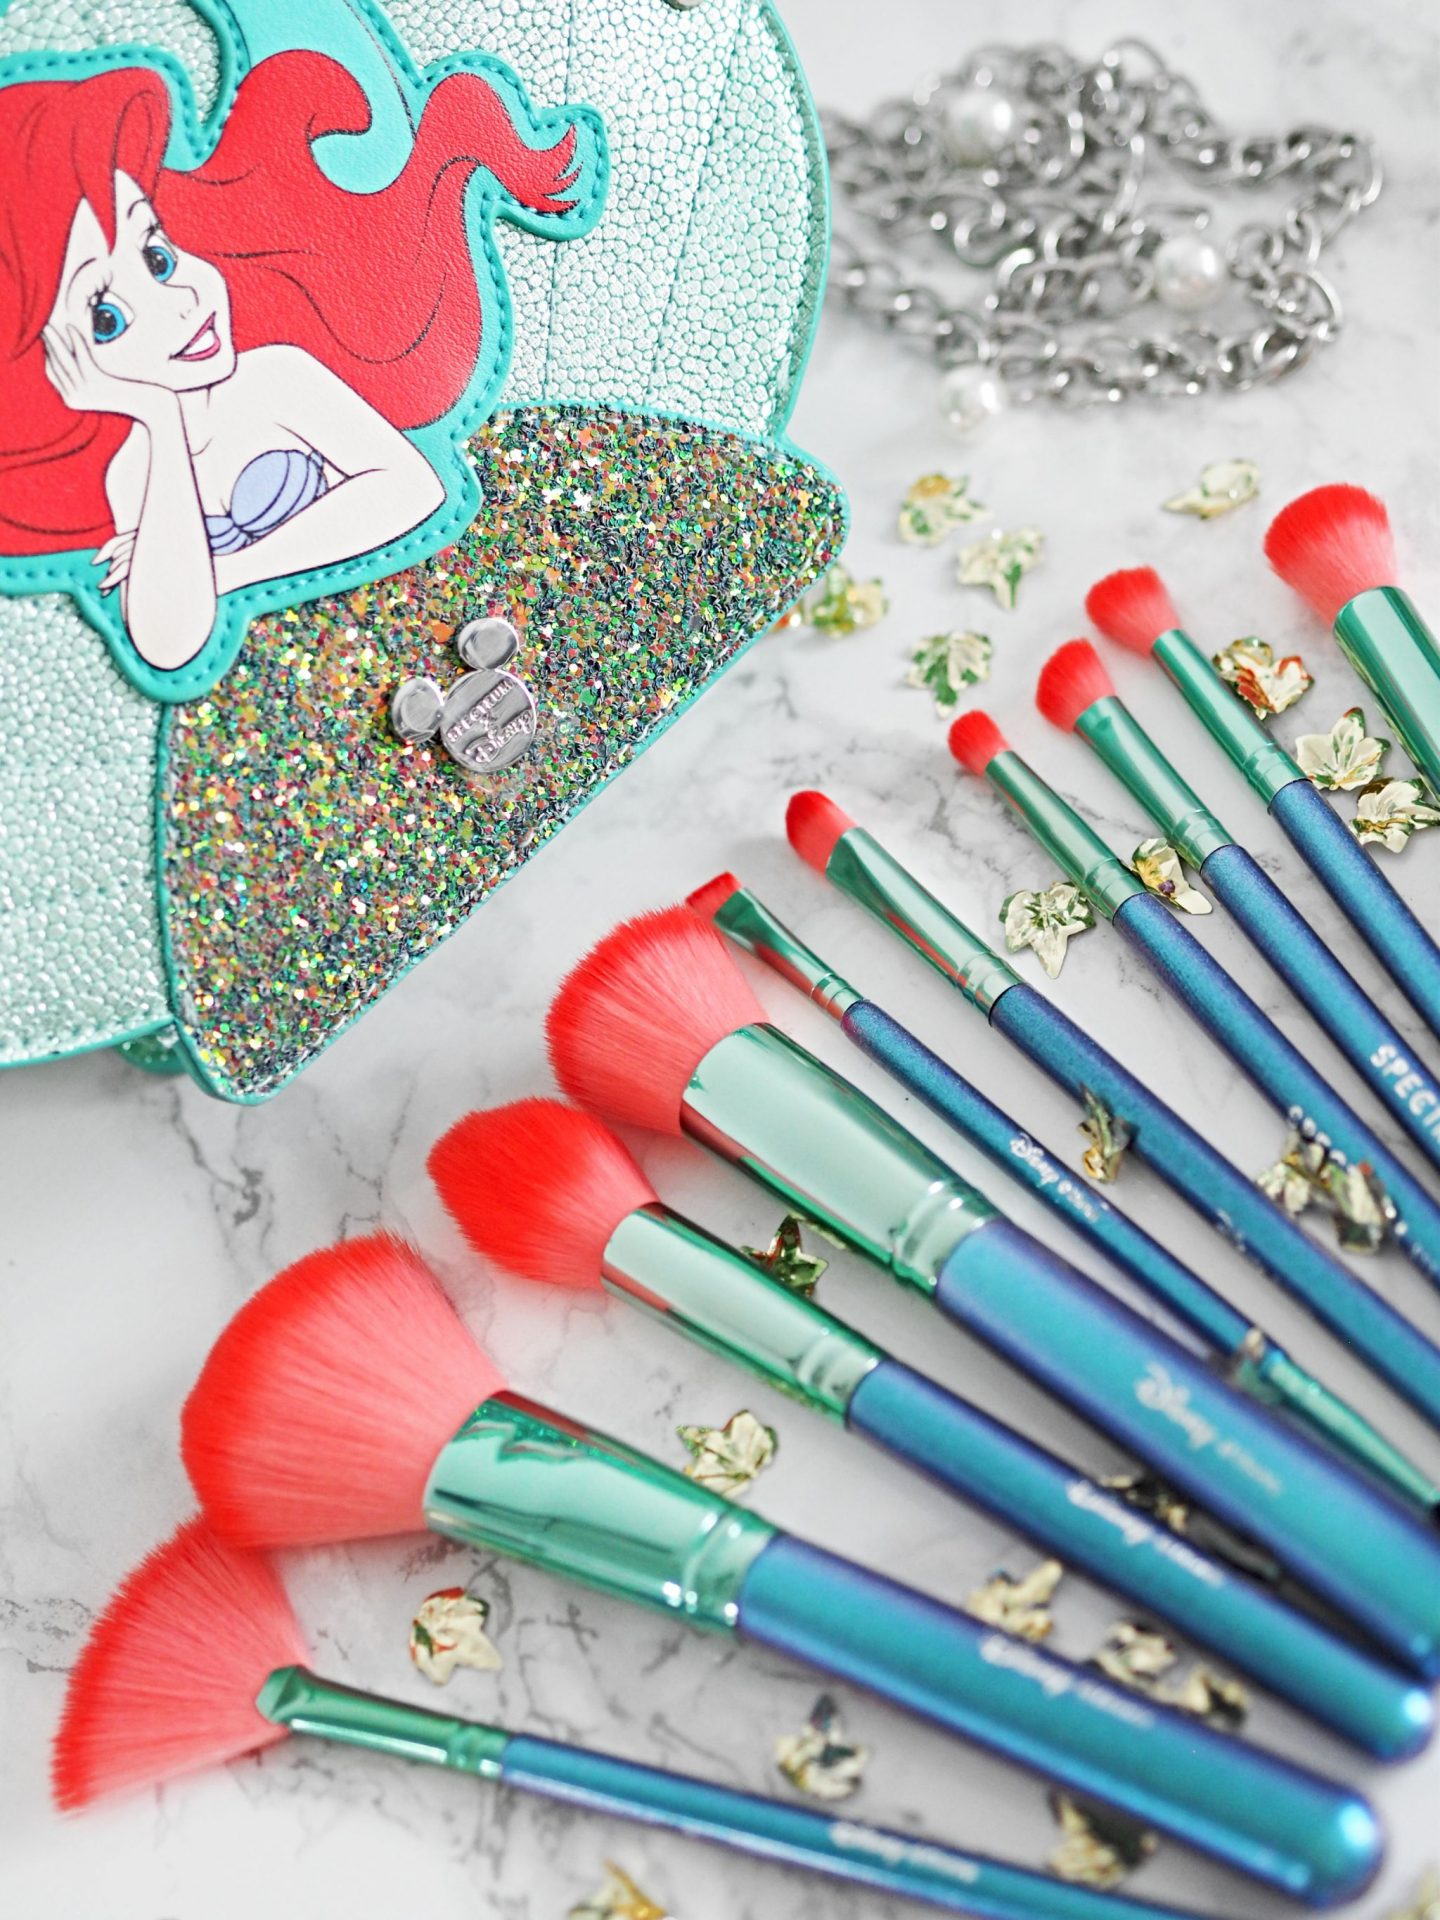 Spectrum Collections The Little Mermaid Ariel Brush Set Review